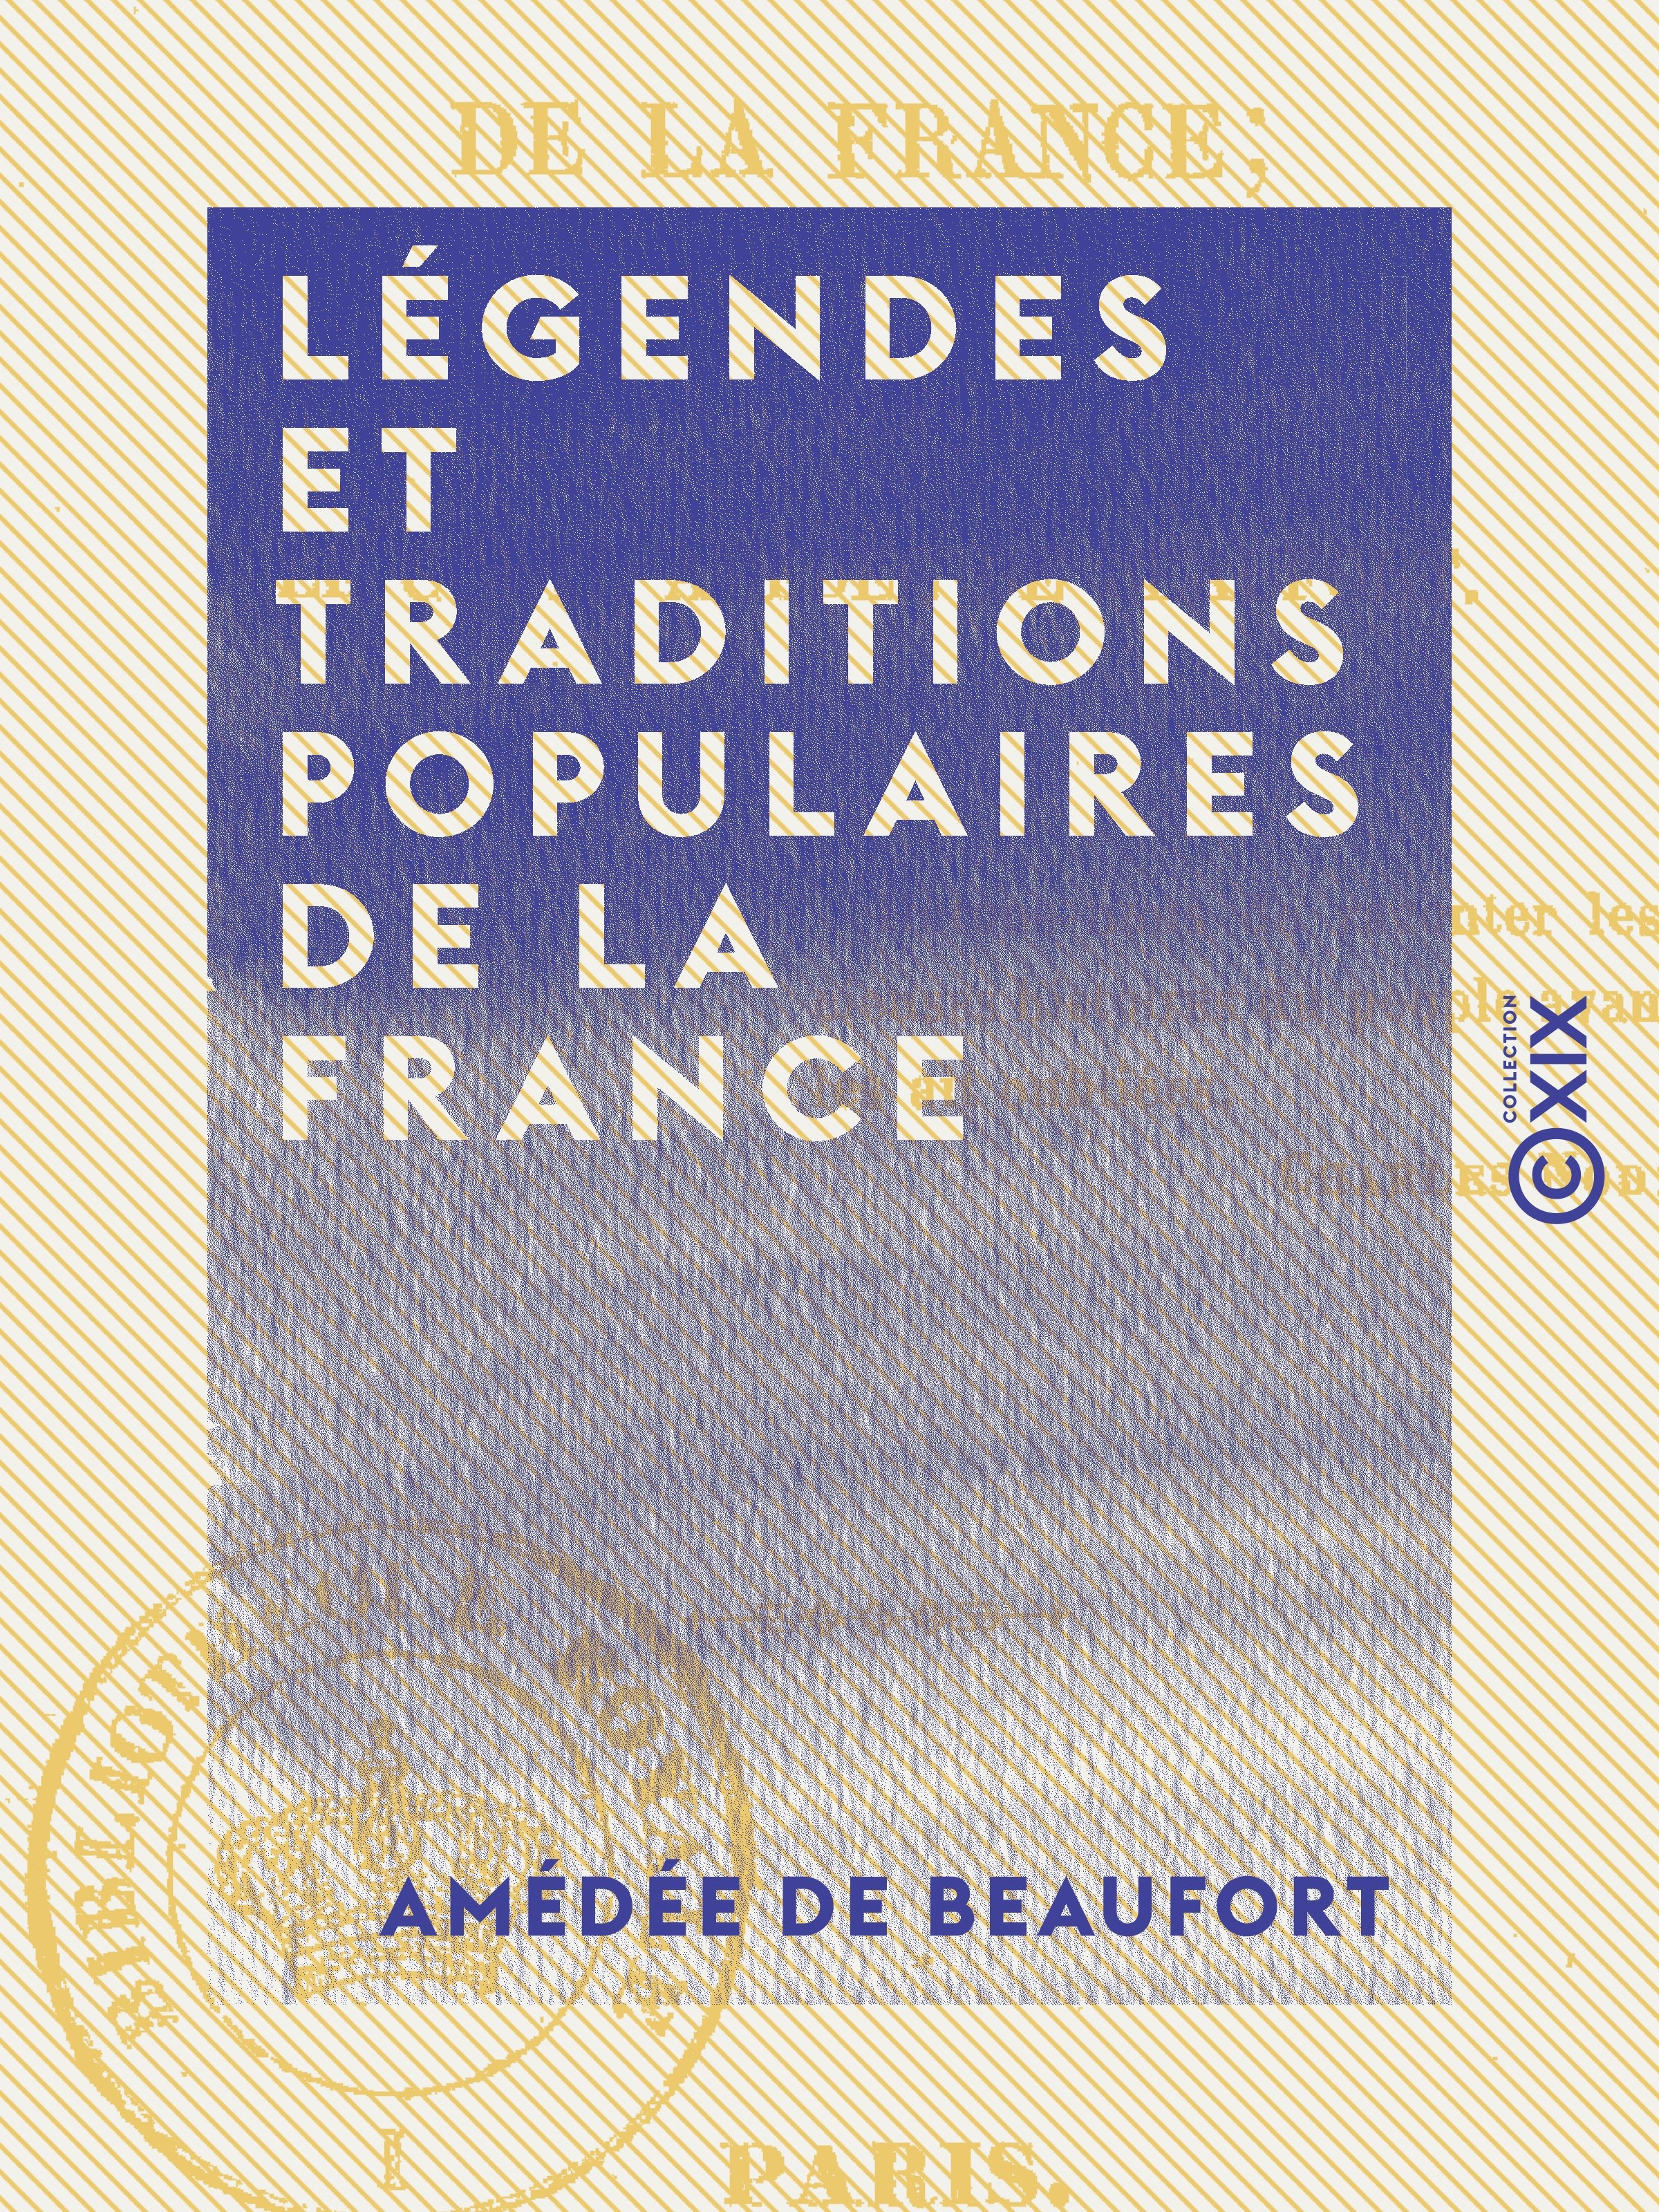 Légendes et Traditions populaires de la France